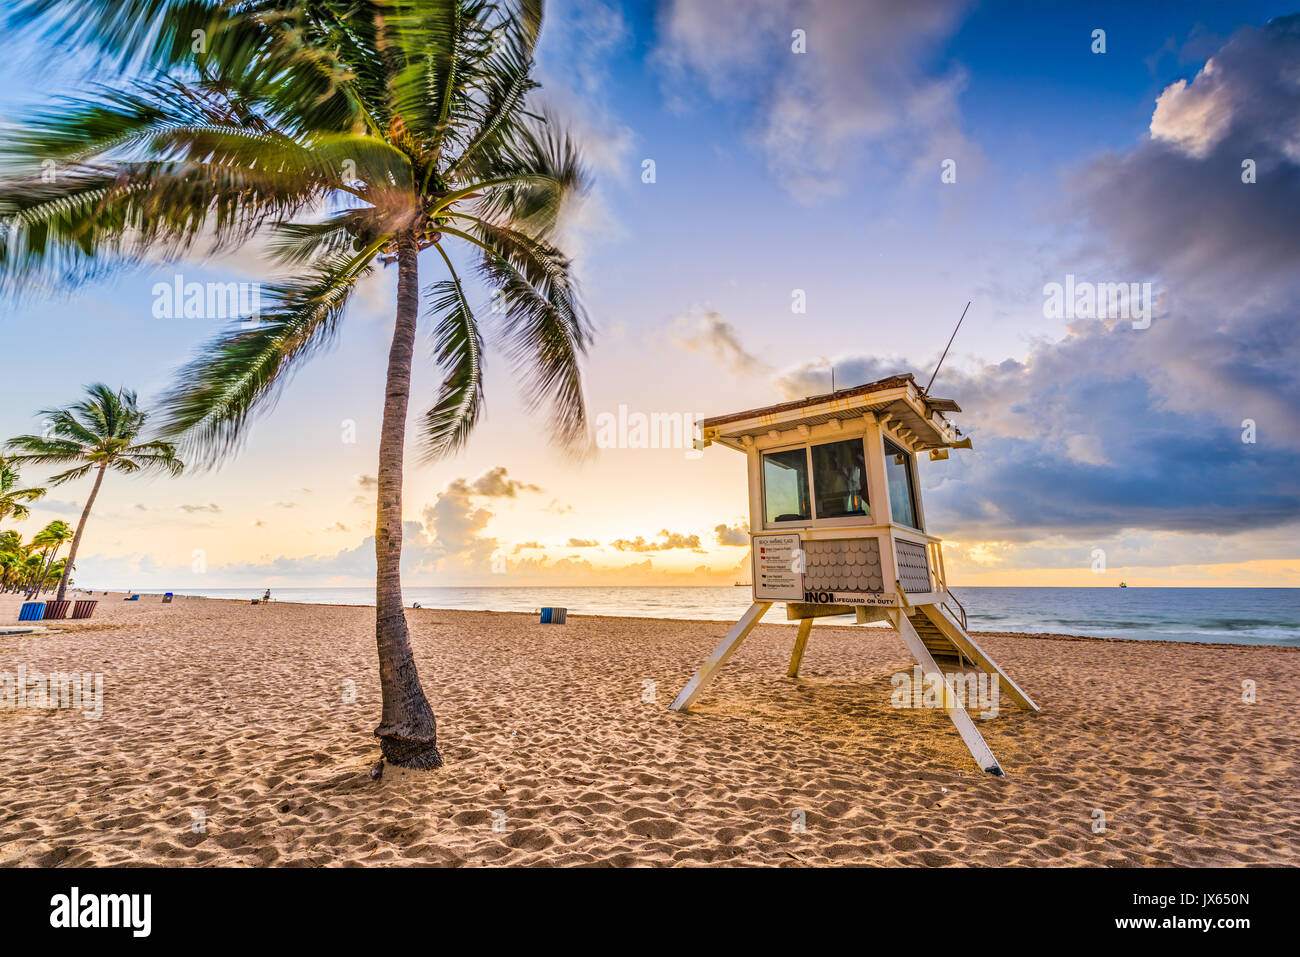 La plage de Fort Lauderdale, Floride, USA. Photo Stock